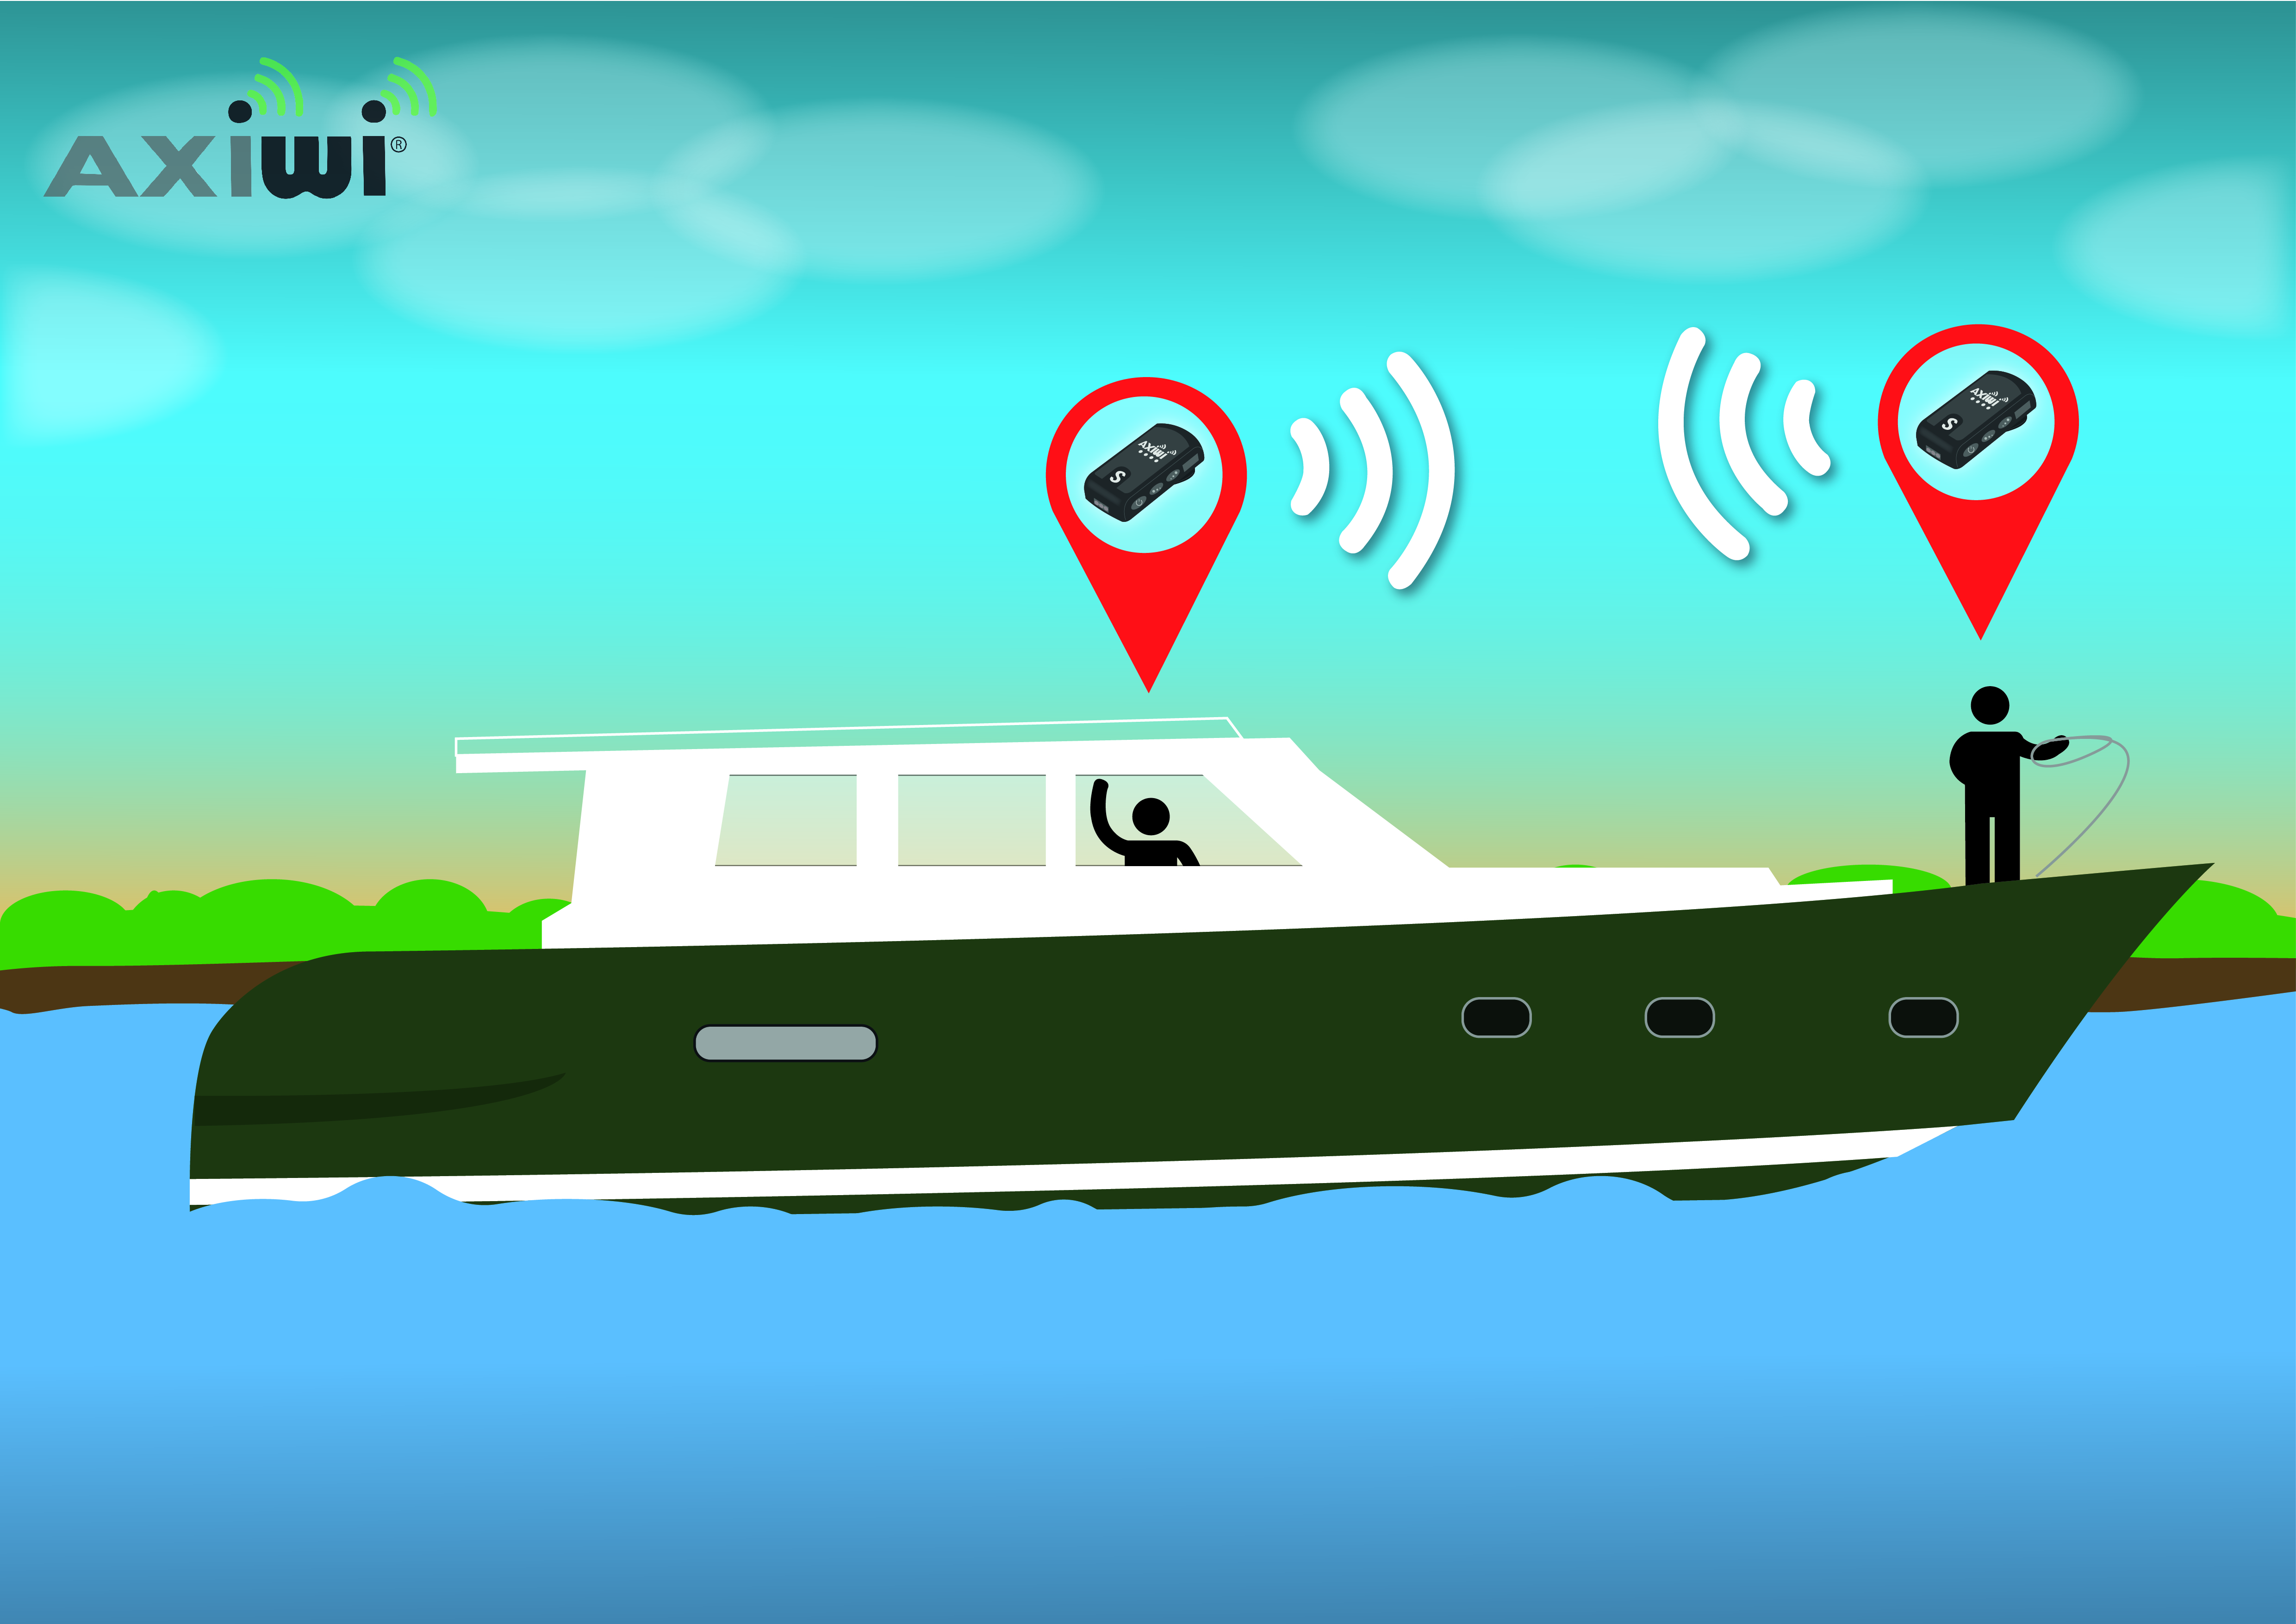 /wireless-communication-system-sailing-yacht-motorboat-axiwi